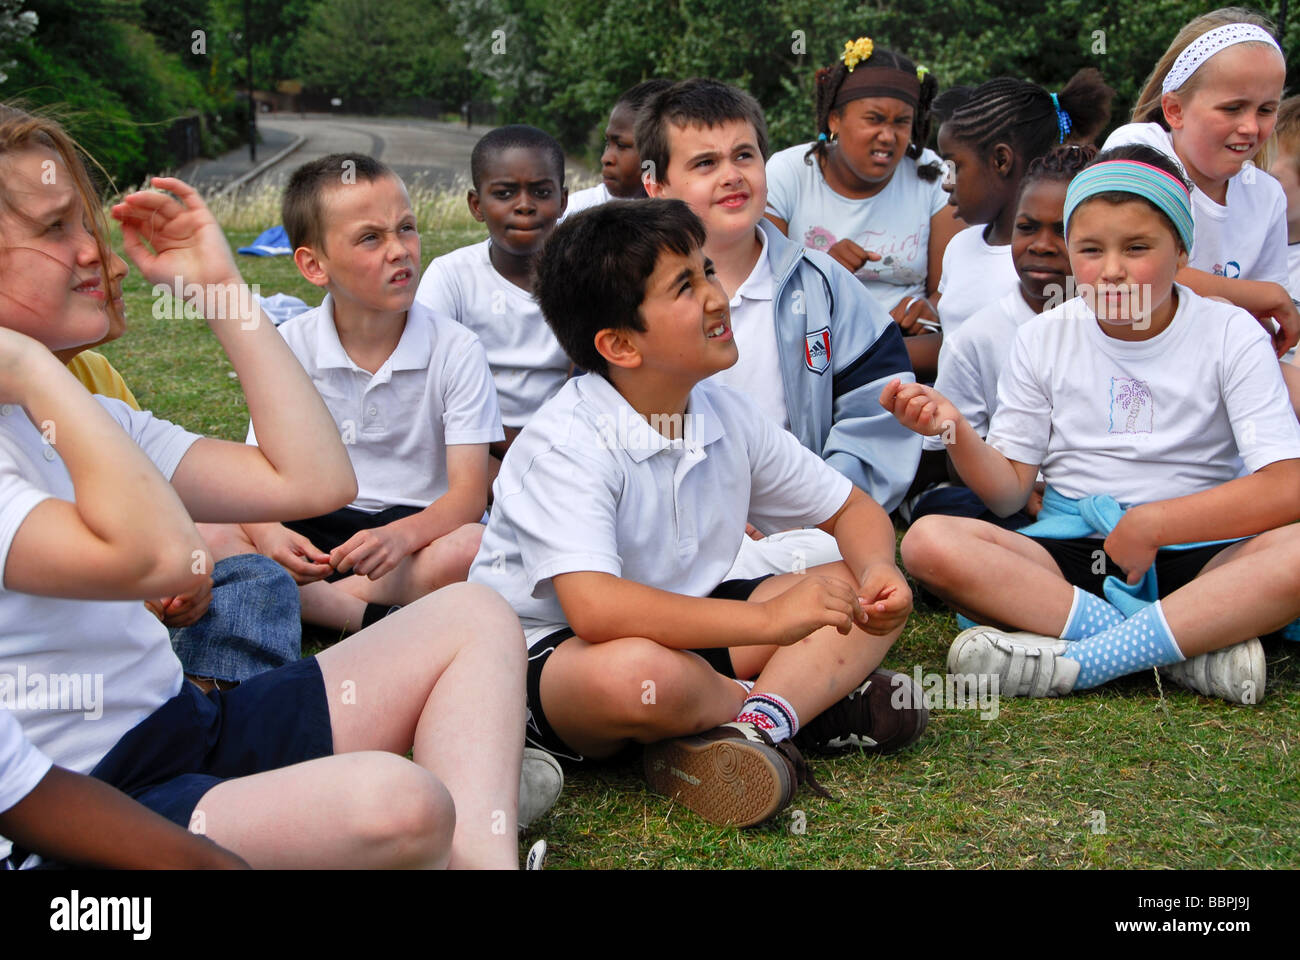 PUPILS IN SCHOOL SPORTS DAY LISTENING THE INSTRUCTION /BURGES PARK 2009 - Stock Image